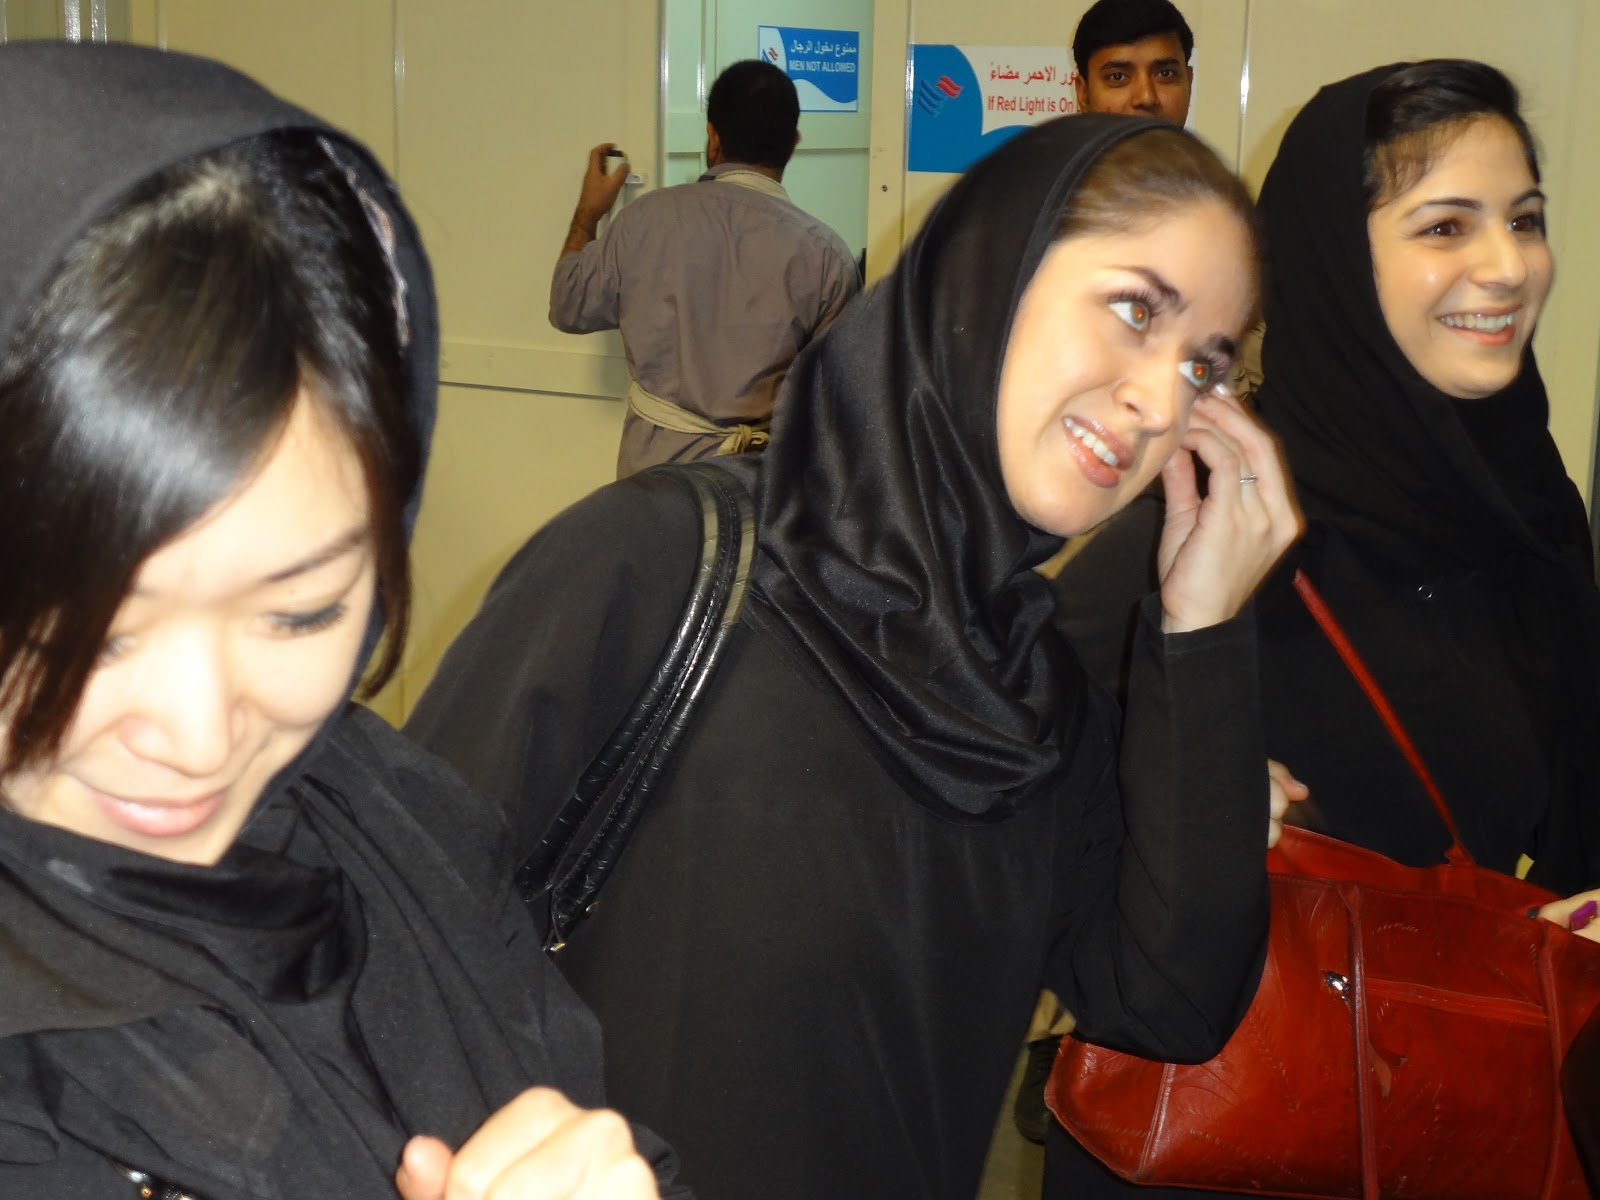 Msfs in arabia 2012 zamil air conditioning i anxious awaited the reaction of the seven msfs women when the door opened they appeared all smiles which i must admit took me aback asfbconference2016 Gallery